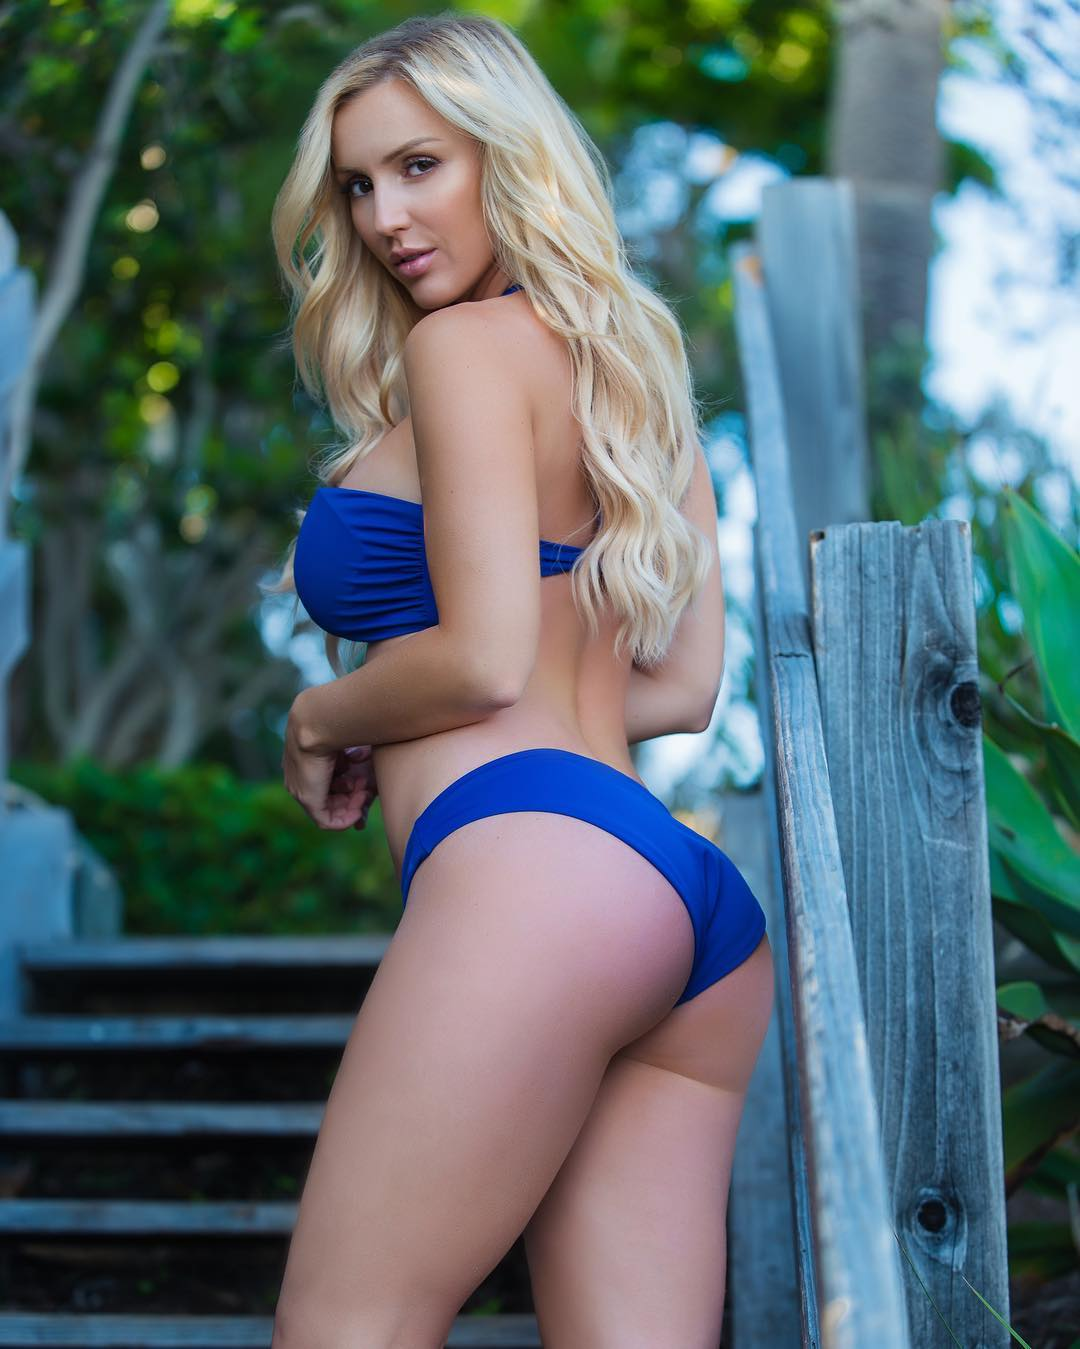 Amanda Paris Hot Bikini Photos - Amanda Paris Hot Bikini Photos